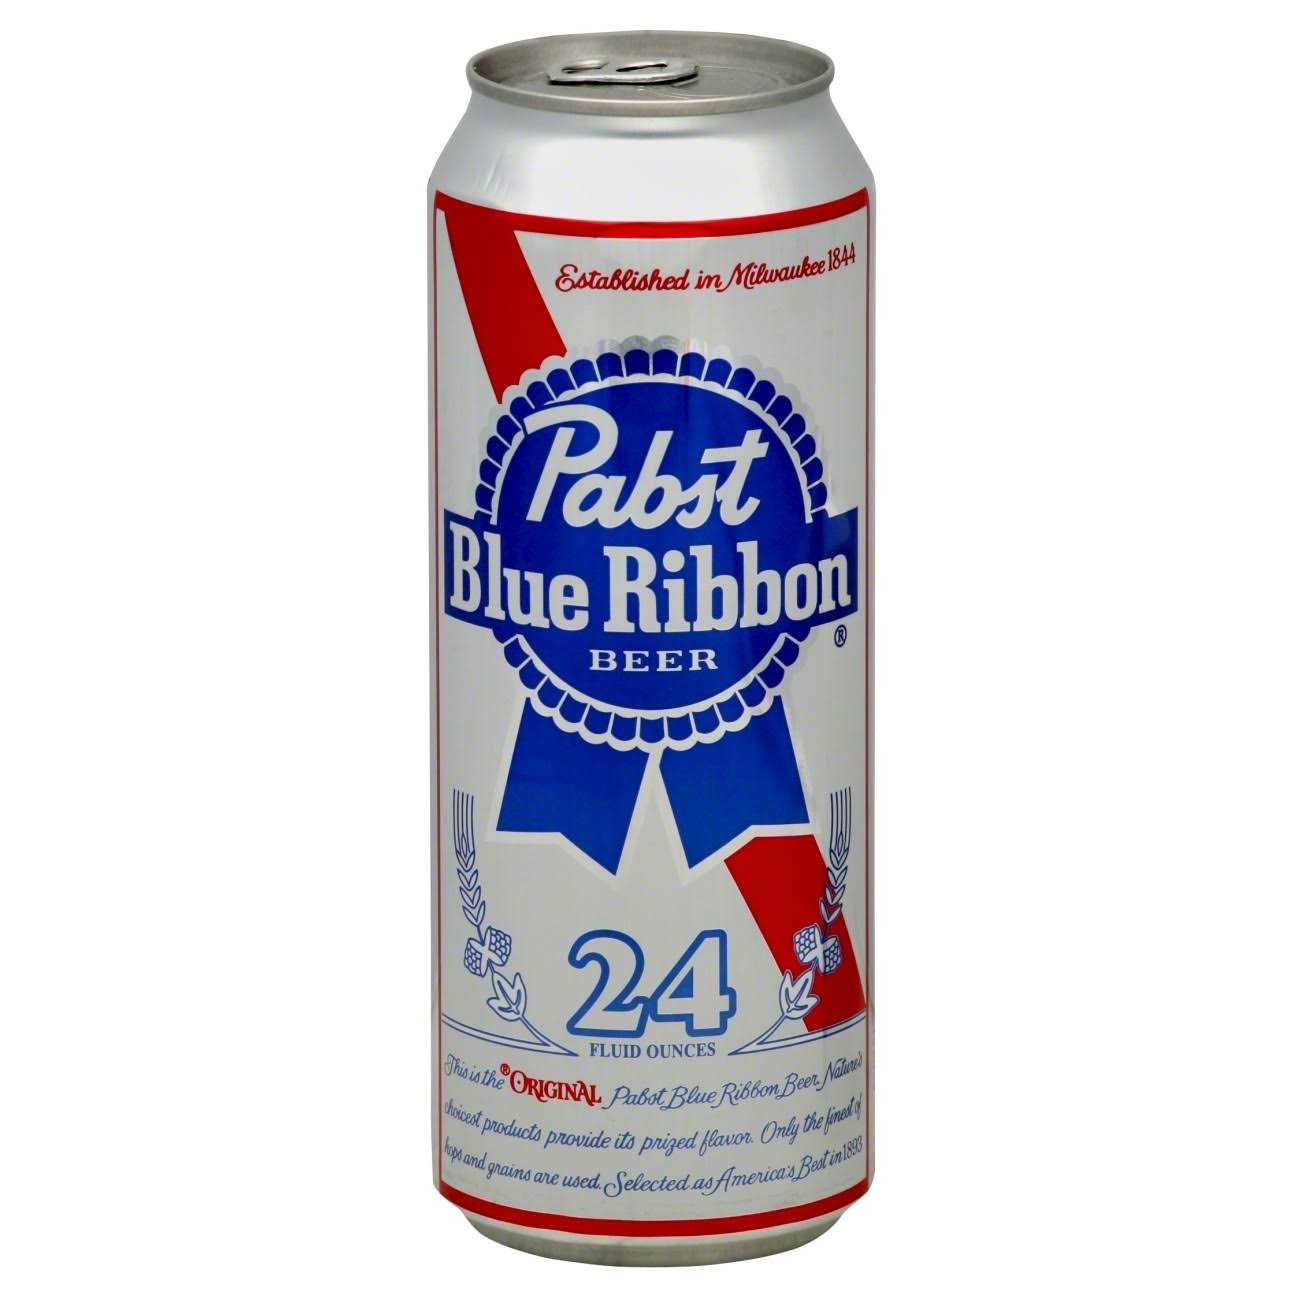 Pabst Blue Ribbon Beer - 24 fluid ounces, 710 ml